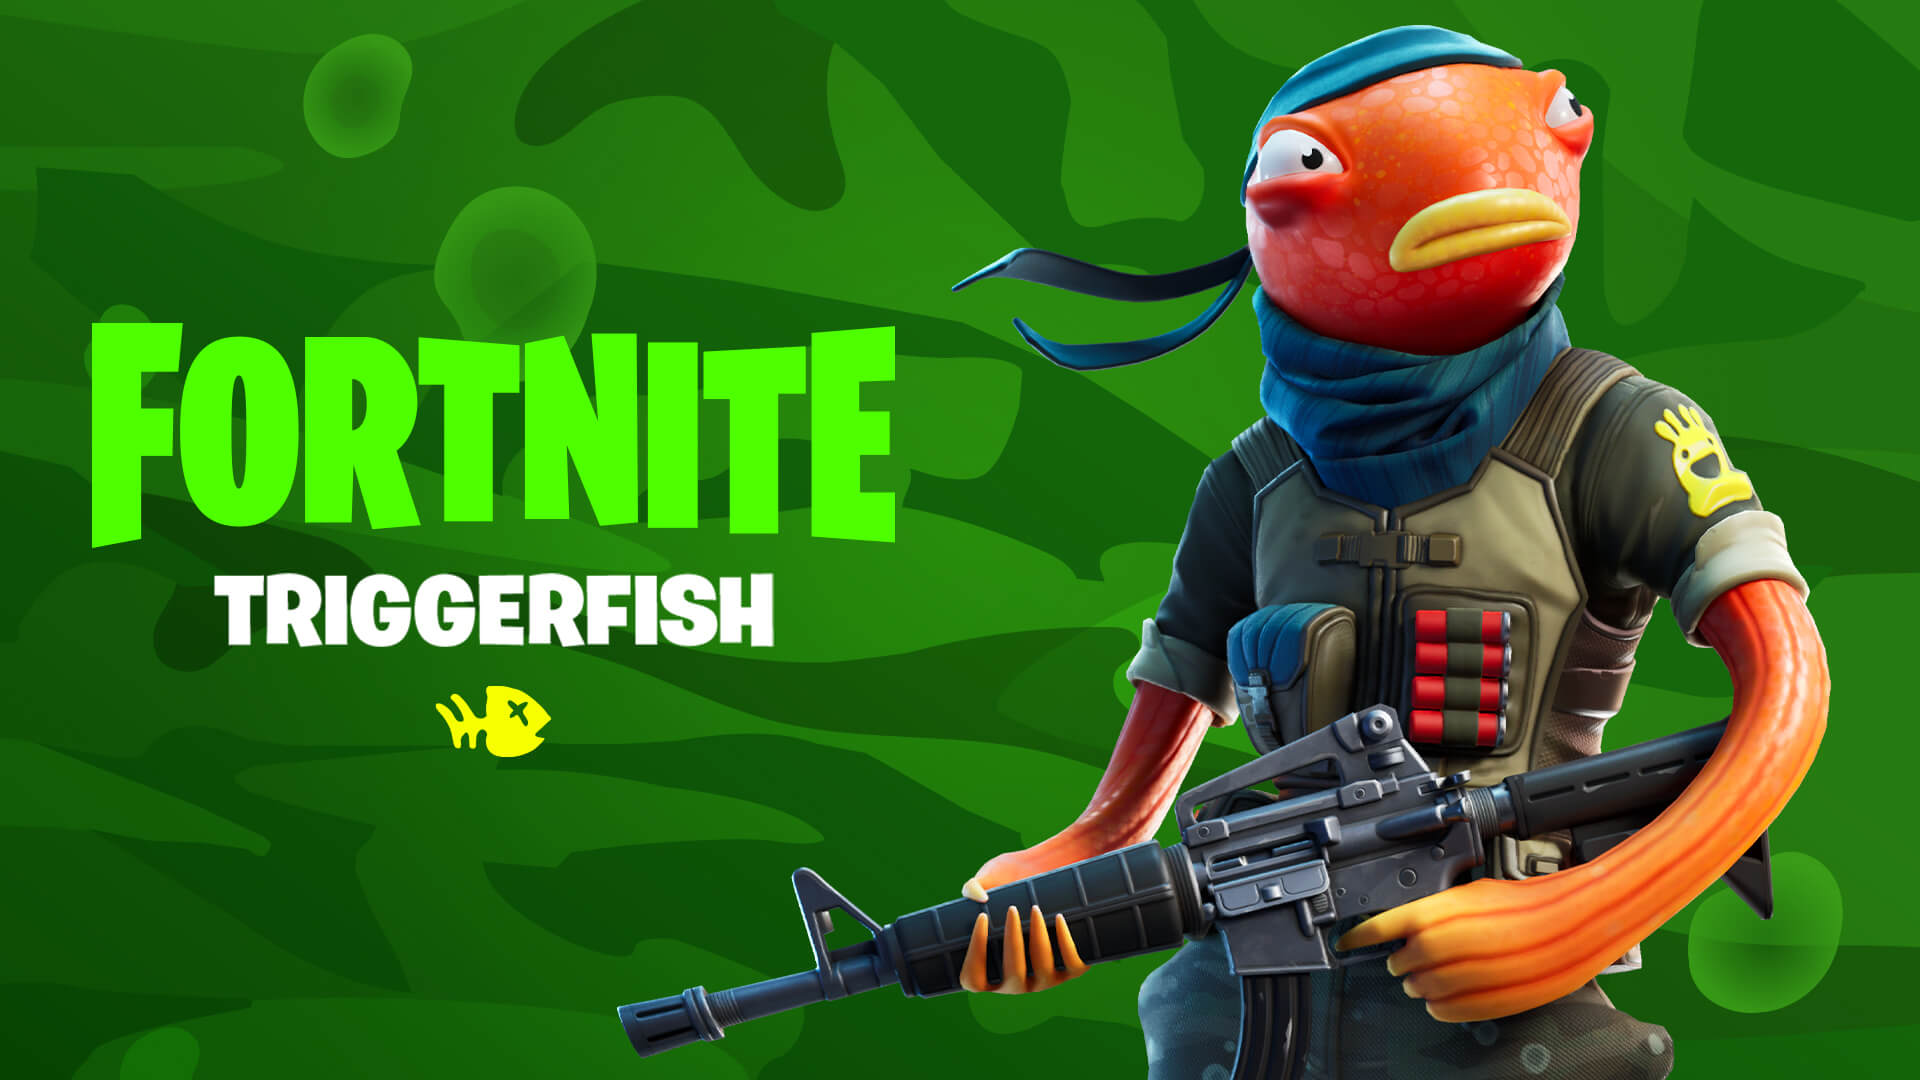 Fortnite Triggerfish Skin